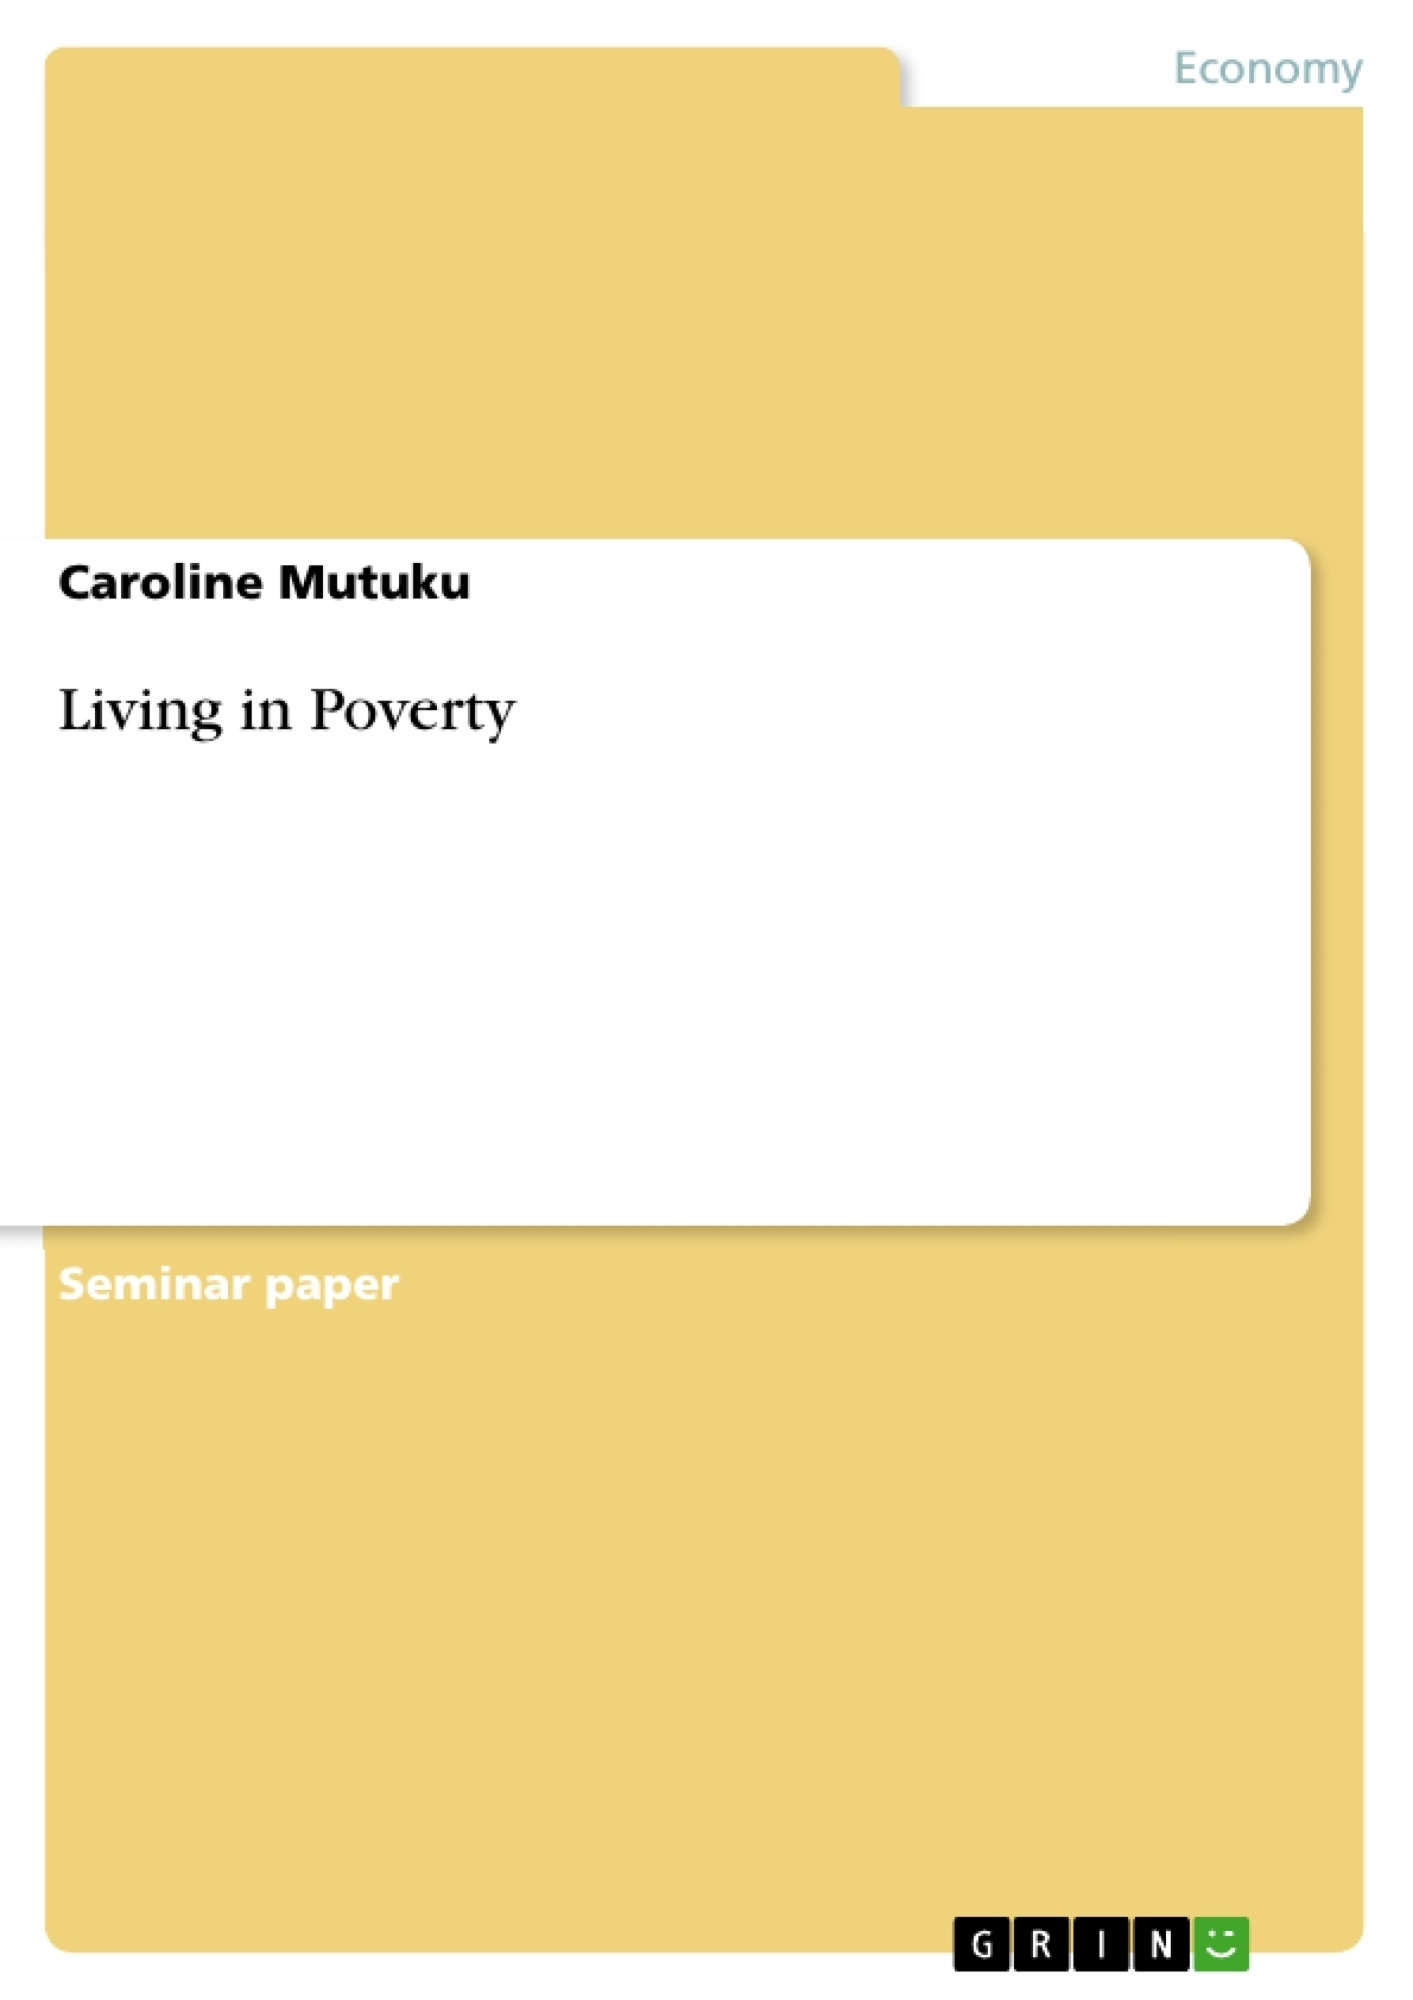 Title: Living in Poverty